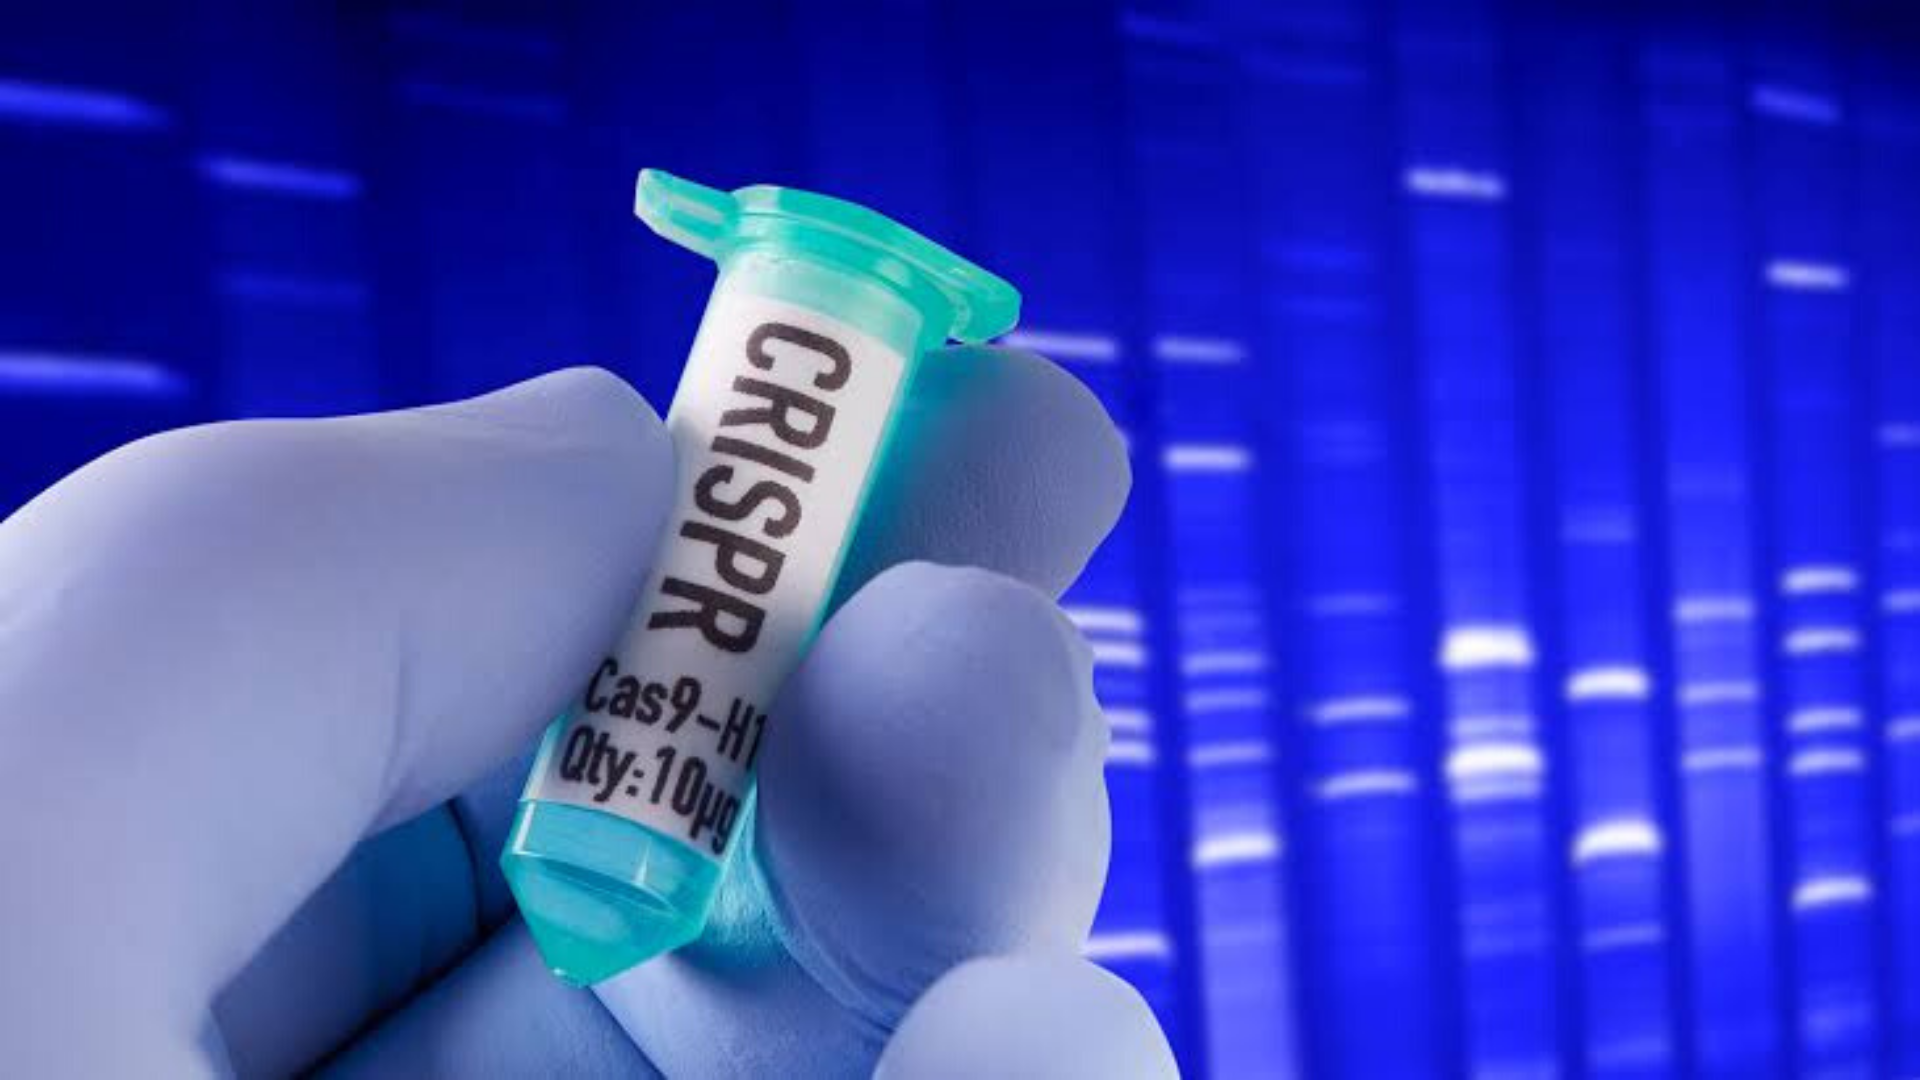 This New CRISPR gene editing tool could improve therapies for HIV